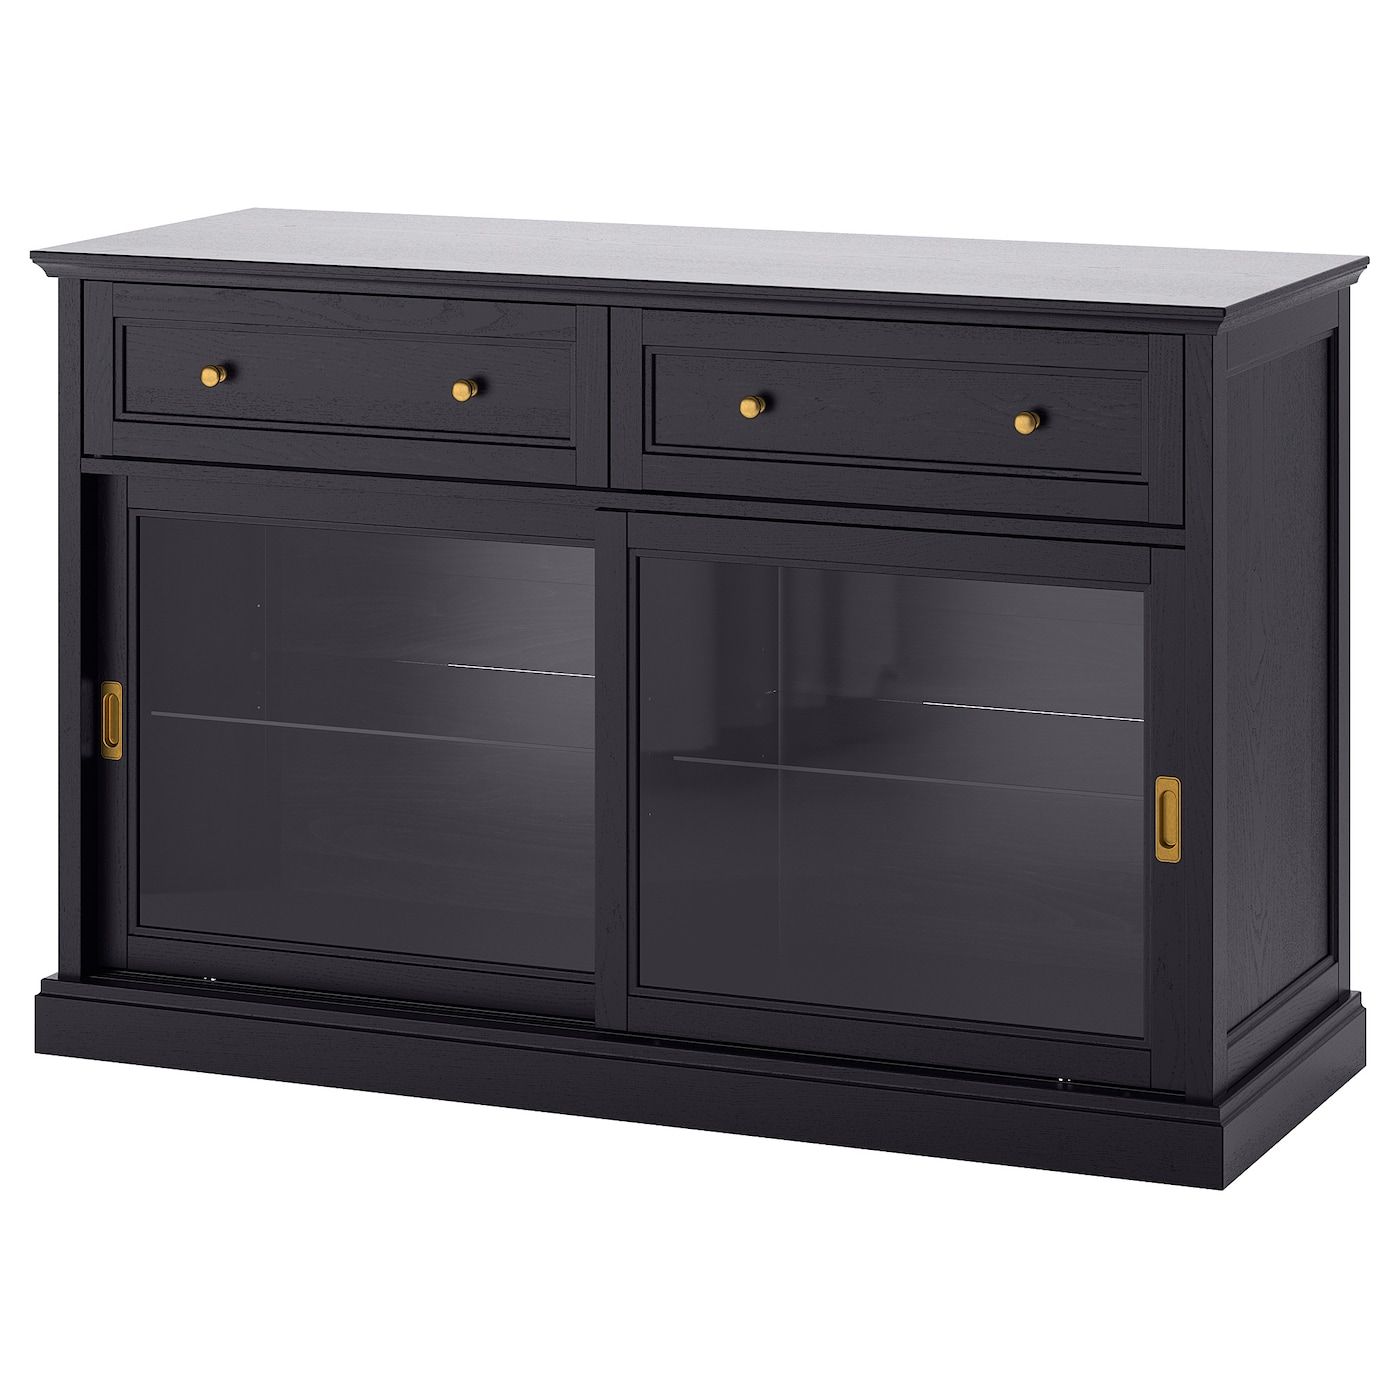 malsj meuble bas teint noir 145 x 92 cm ikea. Black Bedroom Furniture Sets. Home Design Ideas